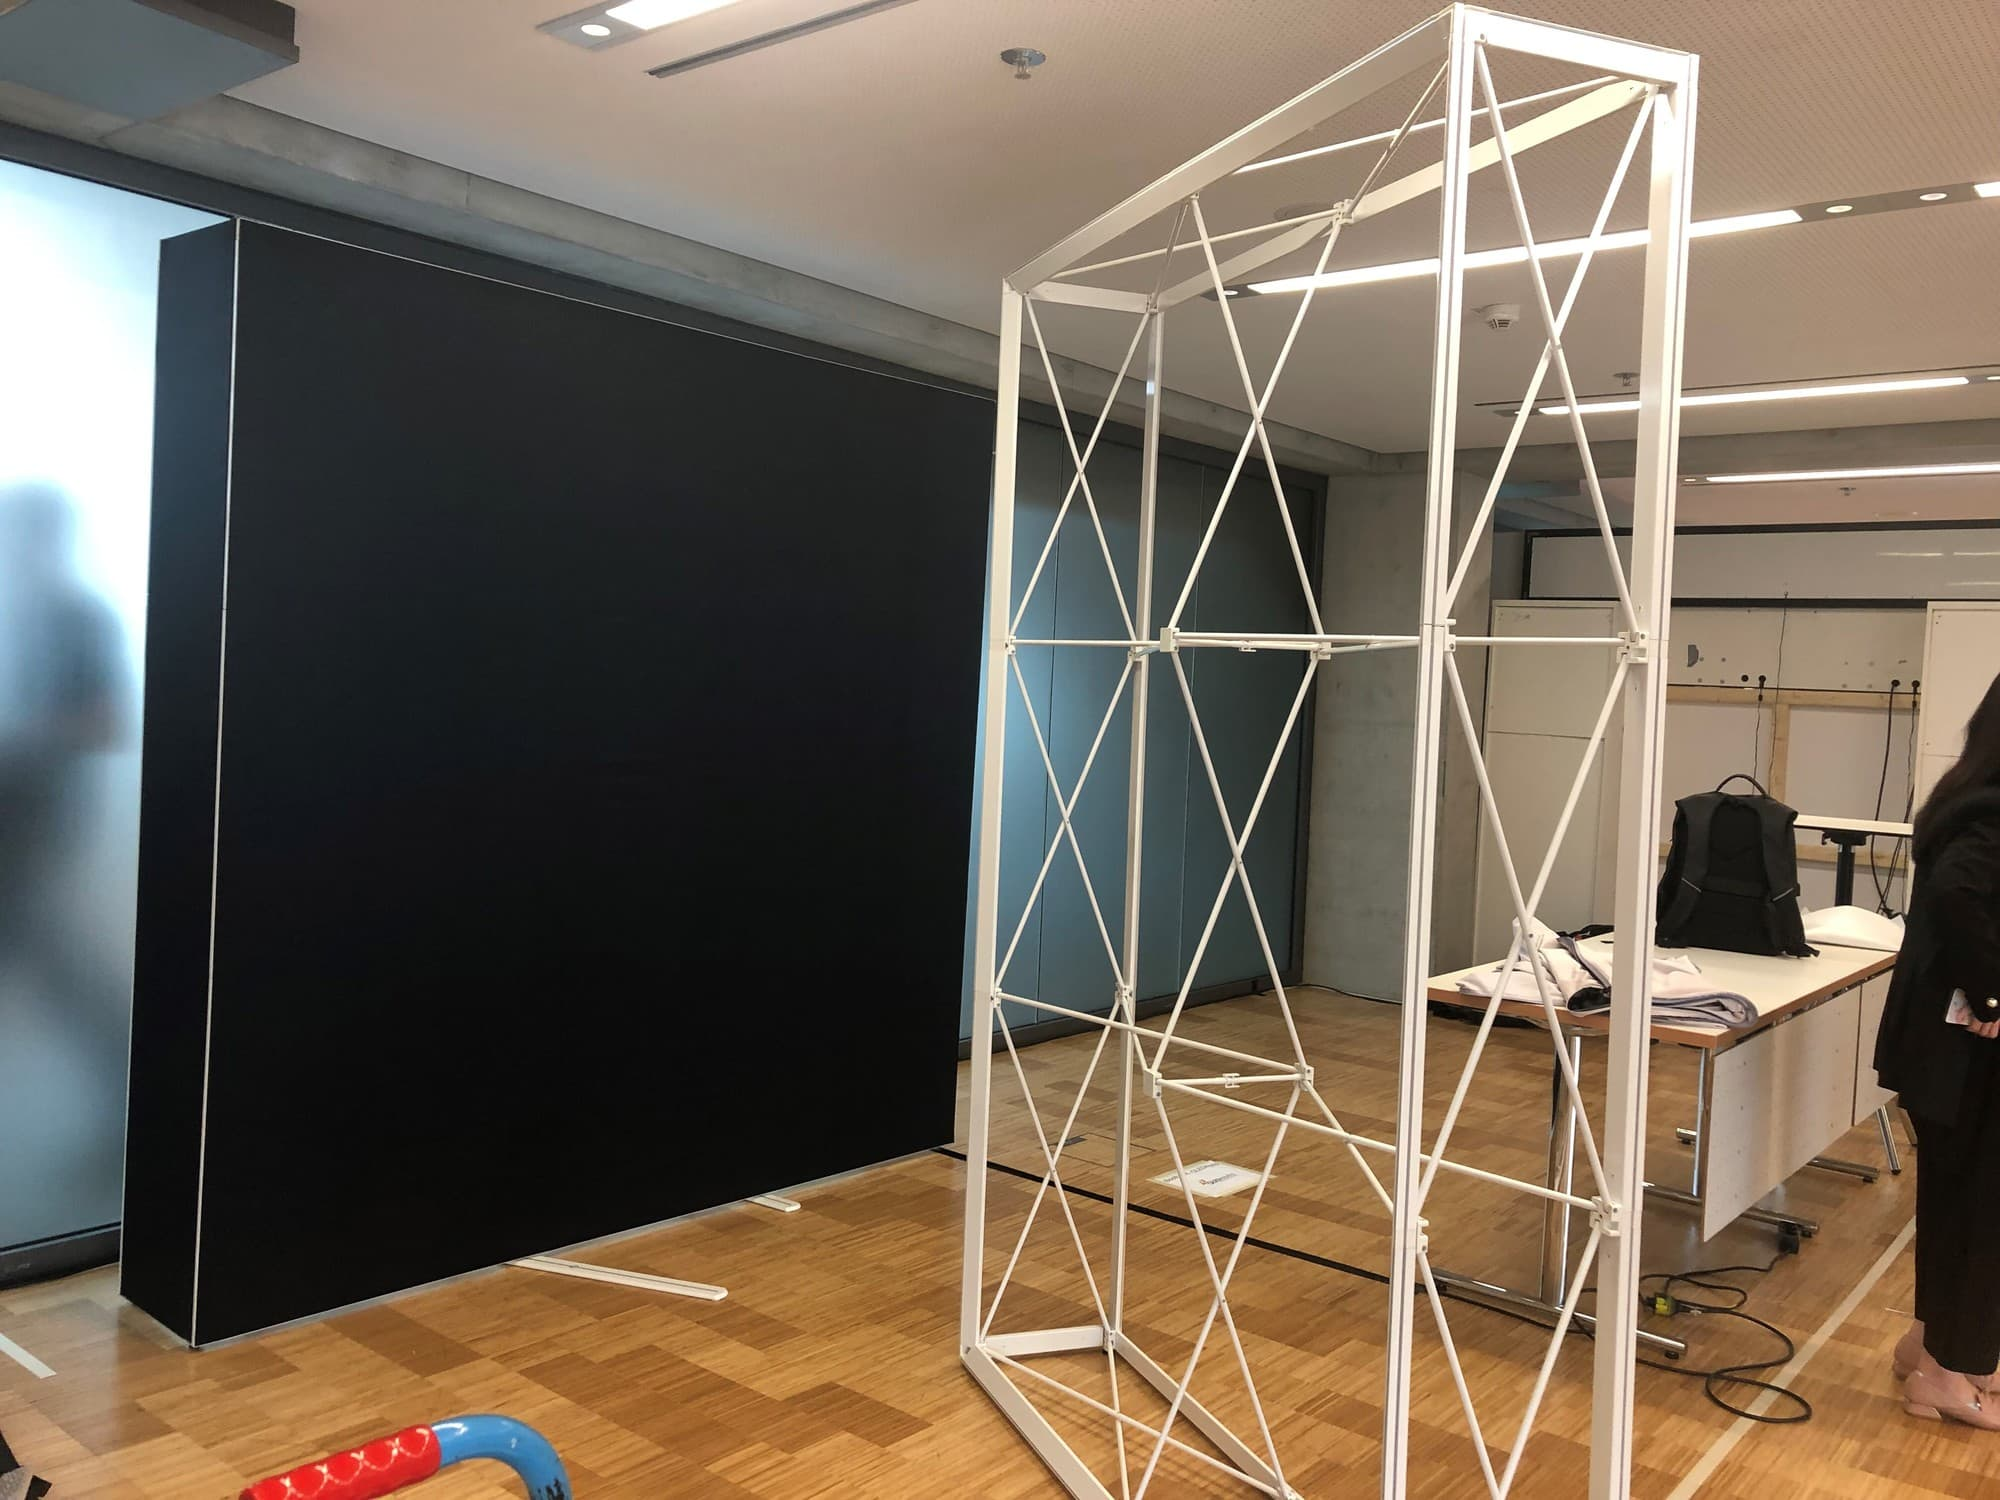 Booth under construction at ISAL 2019 | OLEDWorks